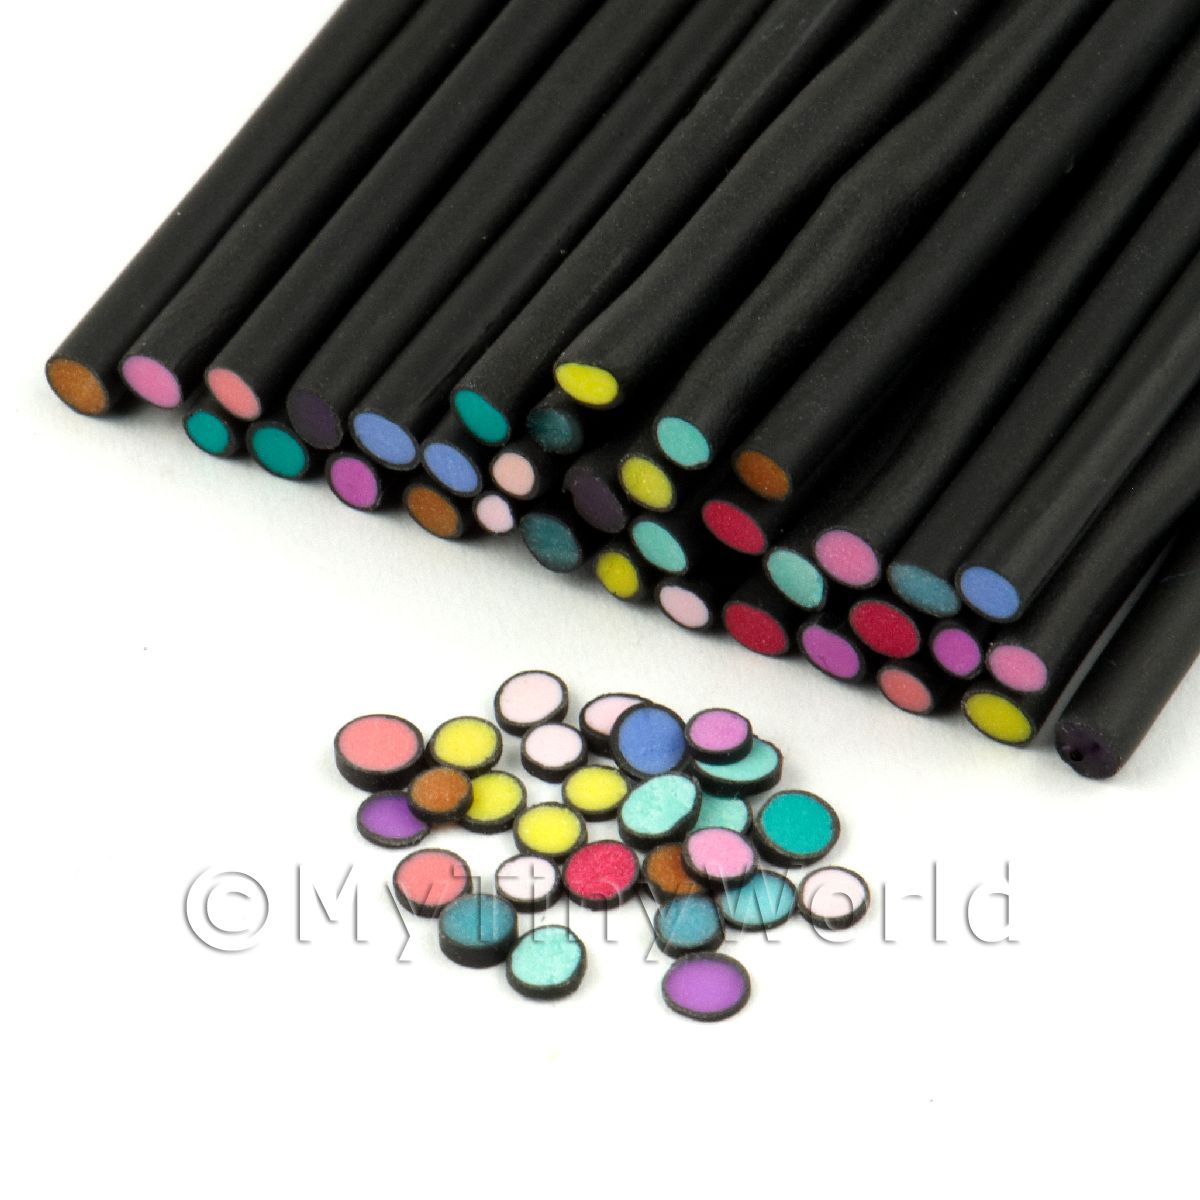 35 Mixed Polka Dot Canes Black Outer (11NC20)